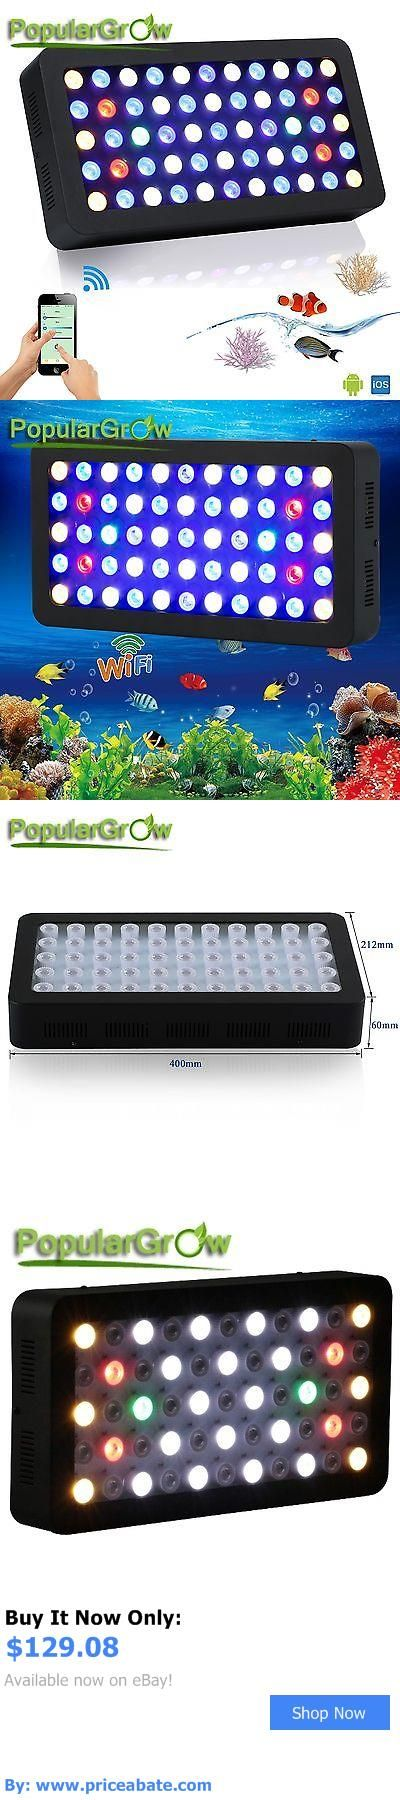 Animals Fish And Aquariums: Wifi Dimmable165w Led Aquarium Light Full Spectrum For Live Fish Tank Reef Coral BUY IT NOW ONLY: $129.08 #priceabateAnimalsFishAndAquariums OR #priceabate